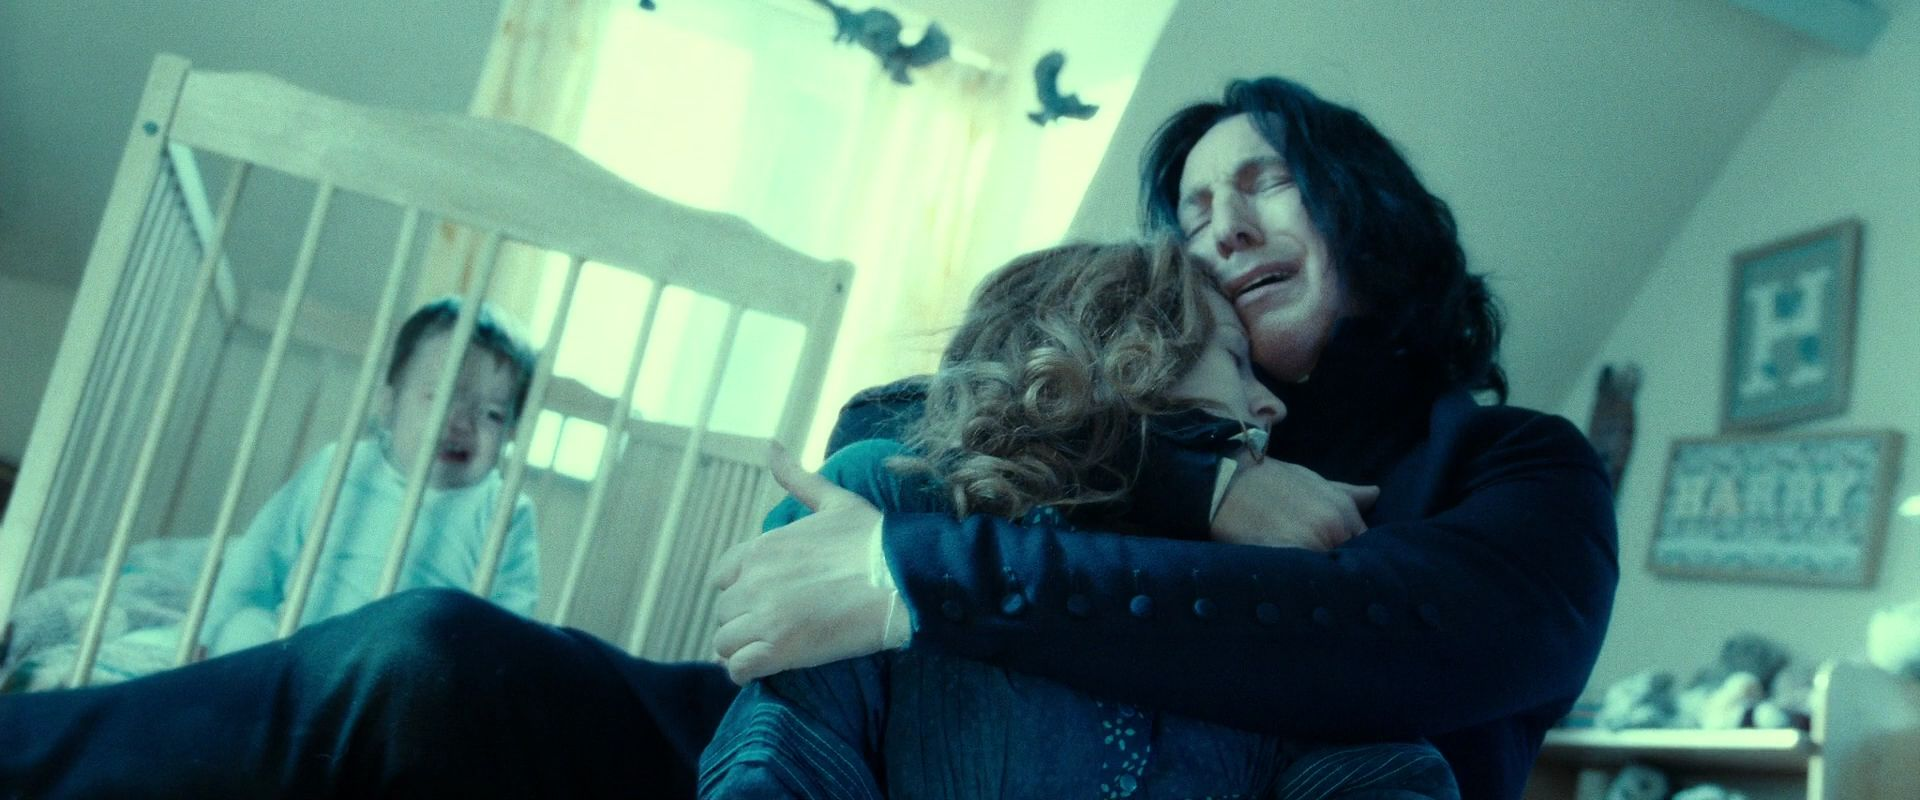 Harry-Potter-7-Deathly-Hallows-Part-2-severus-snape-and-lily-evans-27568485-1920-800